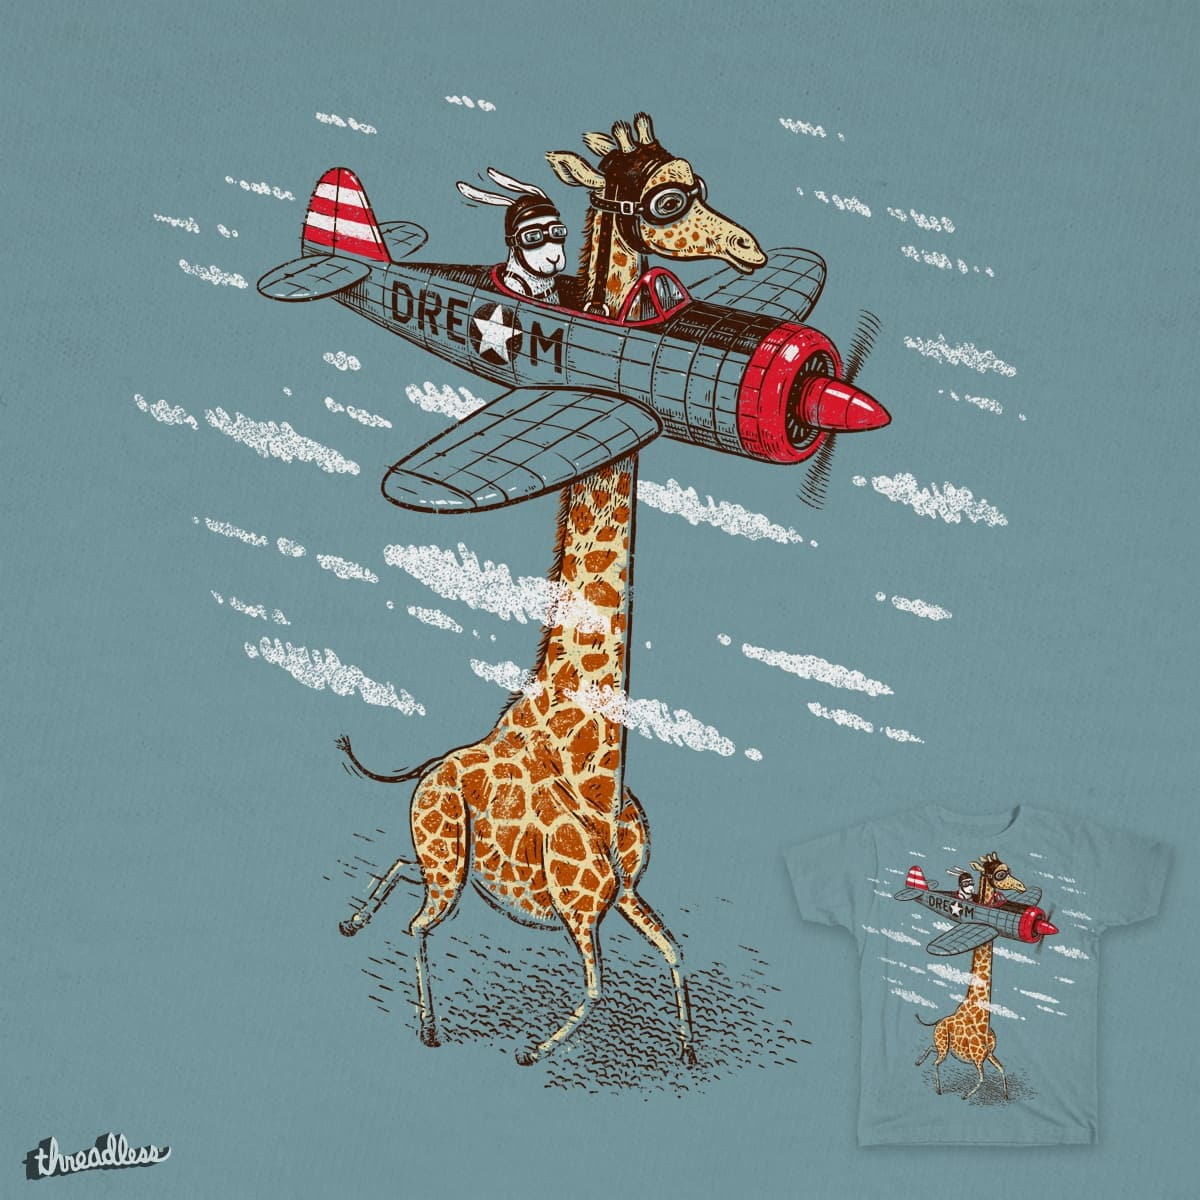 Let your dream fly by Steppeua on Threadless